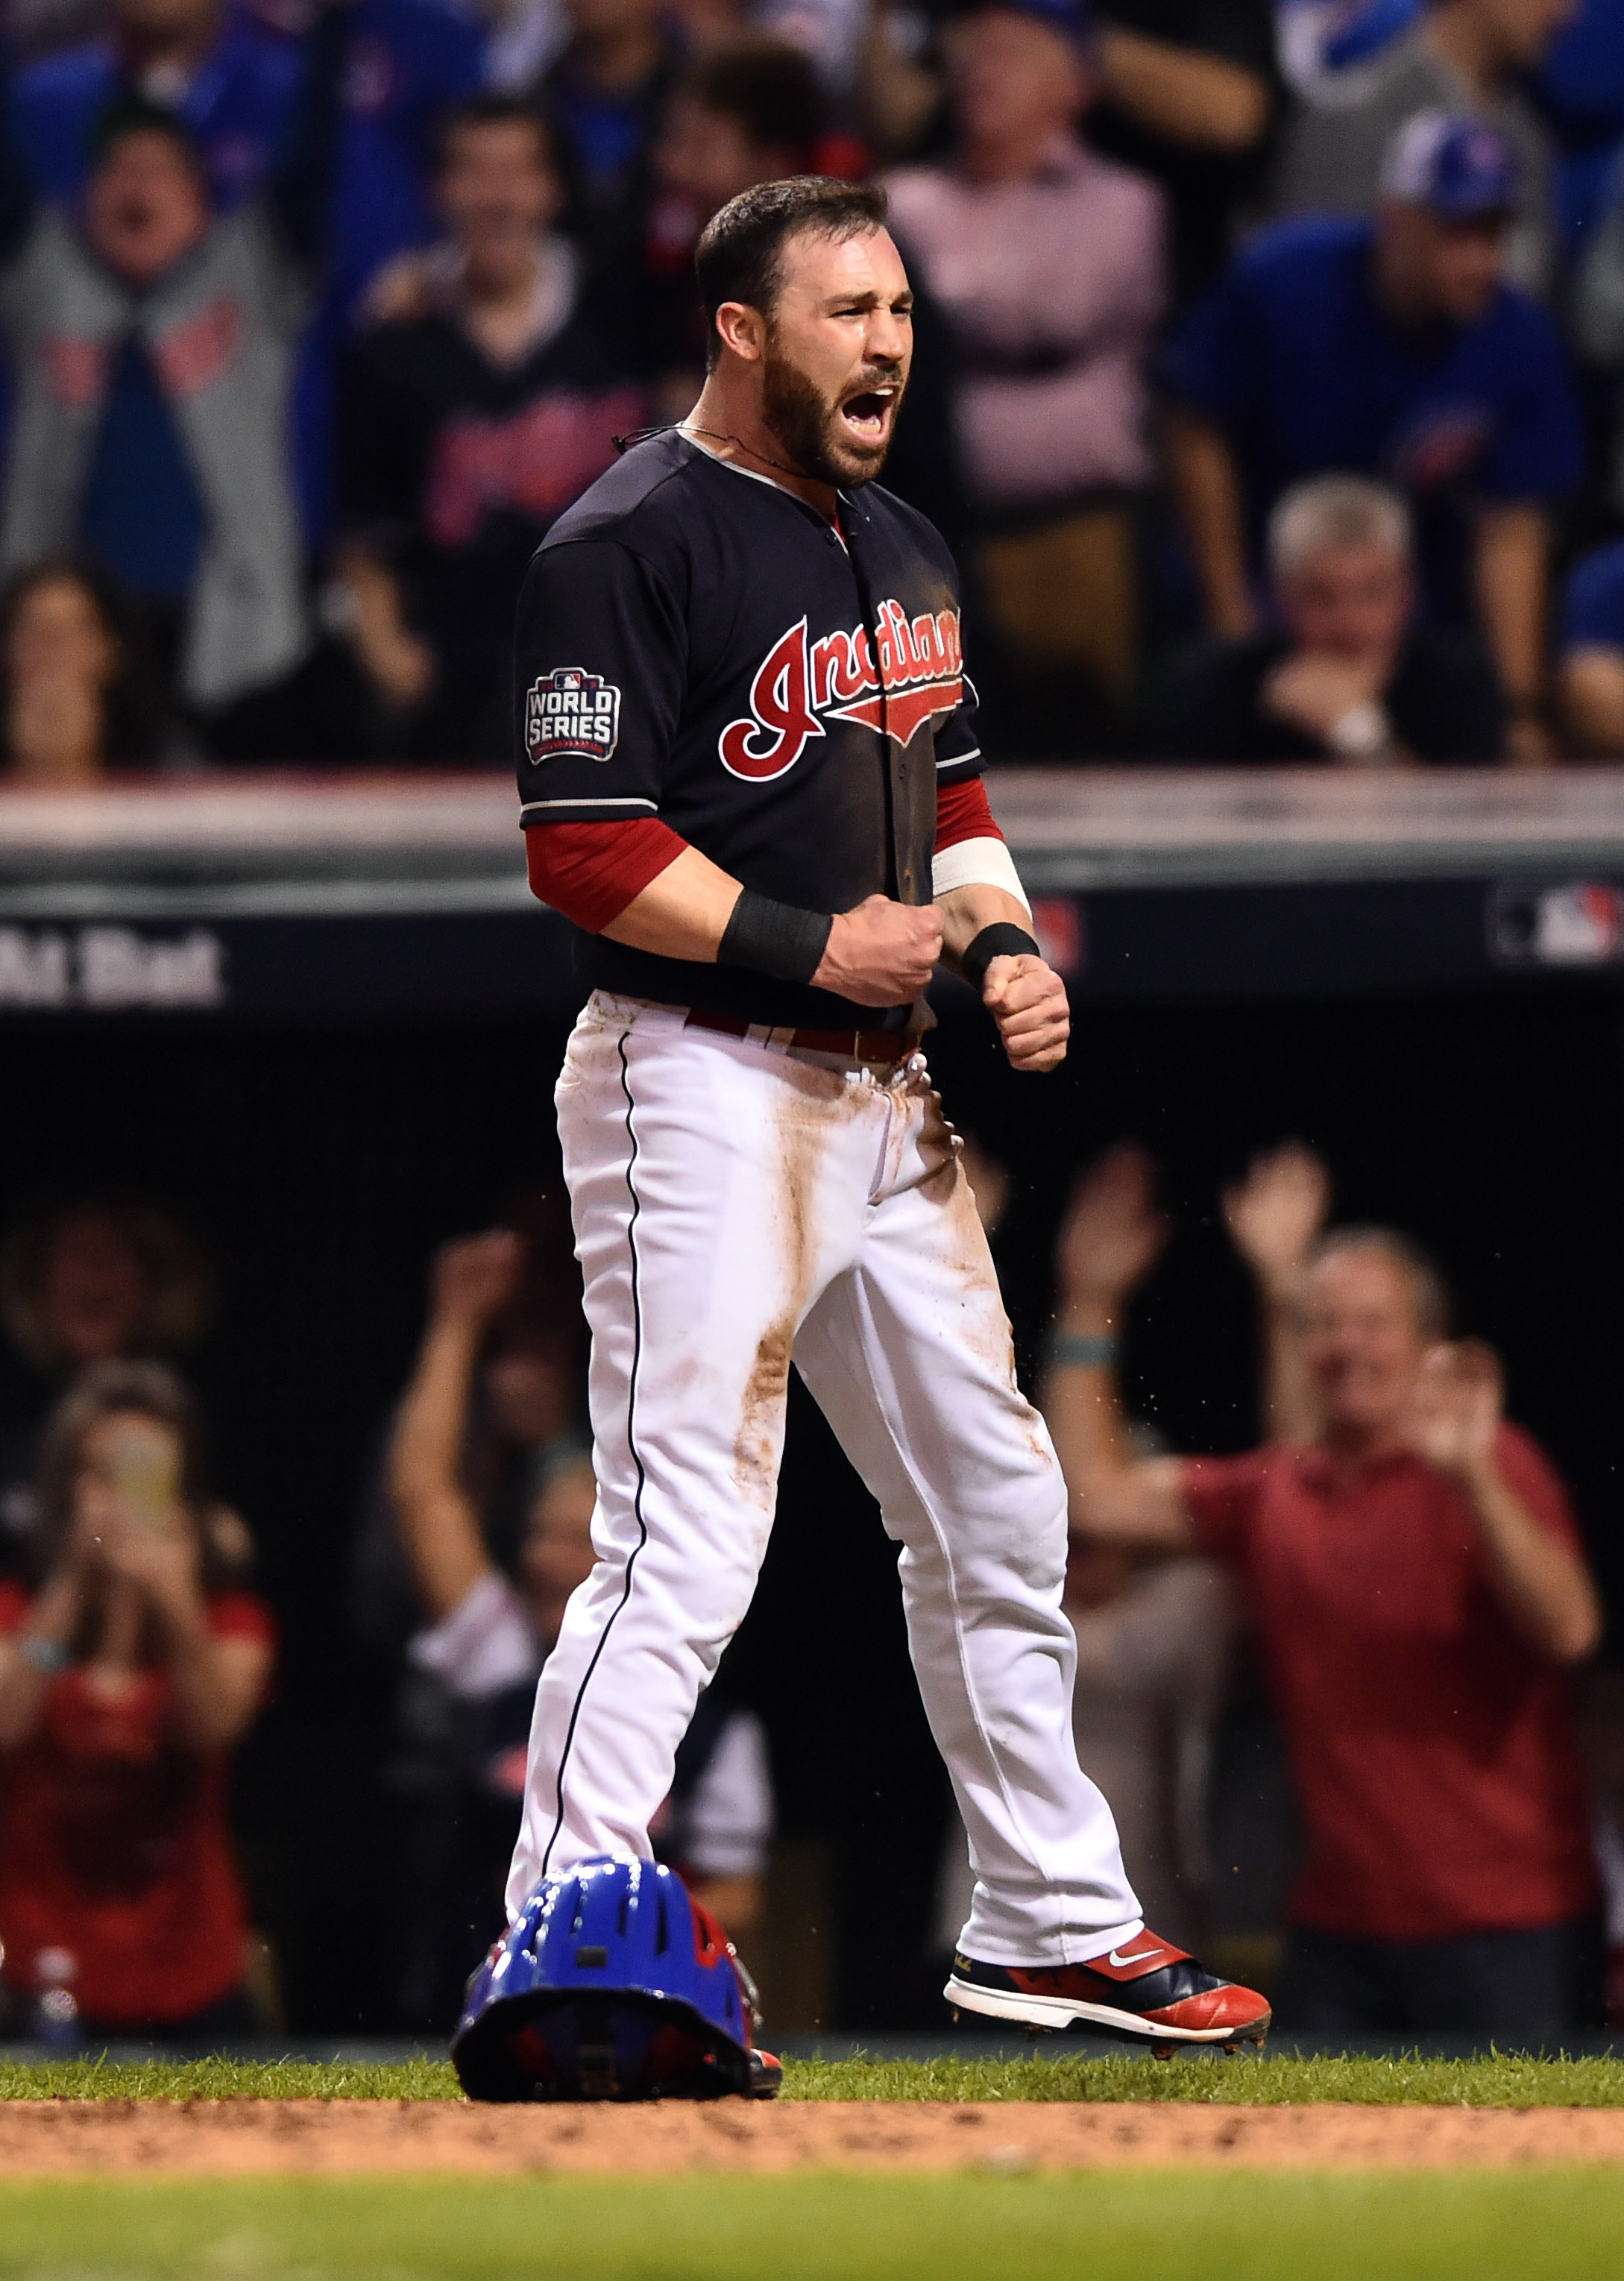 The heart and soul of the Cleveland Indians.